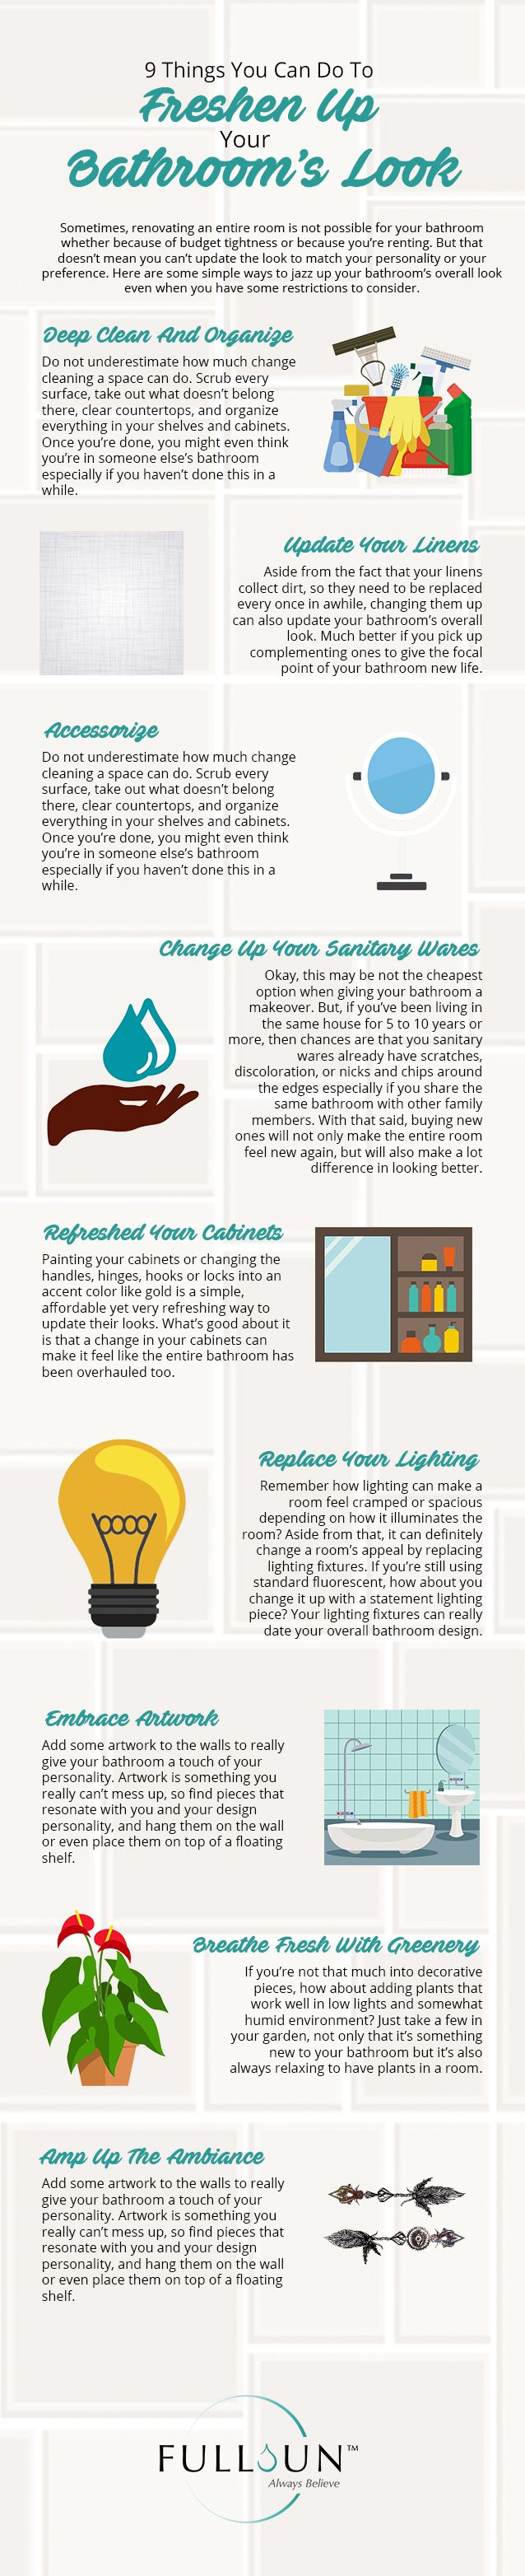 Sometimes, renovating an entire room is not possible for your bathroom whether because of budget tightness or because you're renting. But that doesn't mean you can't update the look to match your personality or your preference. Here are some simple ways to jazz up your bathroom's overall look even when you have some restrictions to consider. #Sanitarywaresandfittingssingapore #Bestsanitaryfitting #Bathroomaccessories